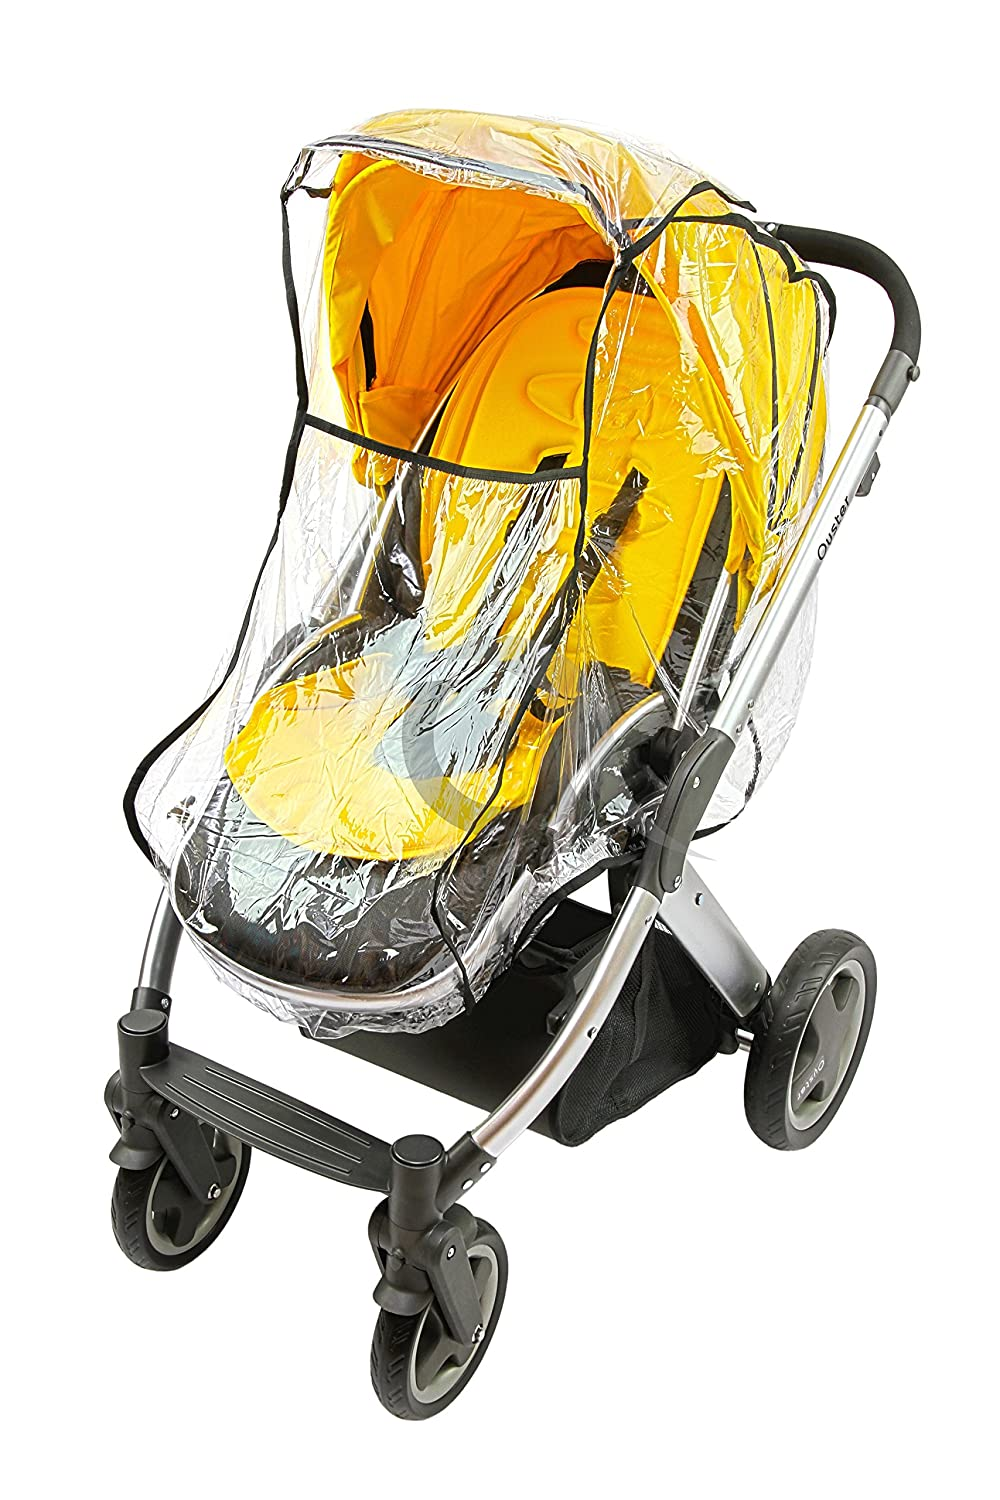 RAINCOVER RAIN COVER TO FIT BABYSTYLE OYSTER CAR SEAT CARSEAT